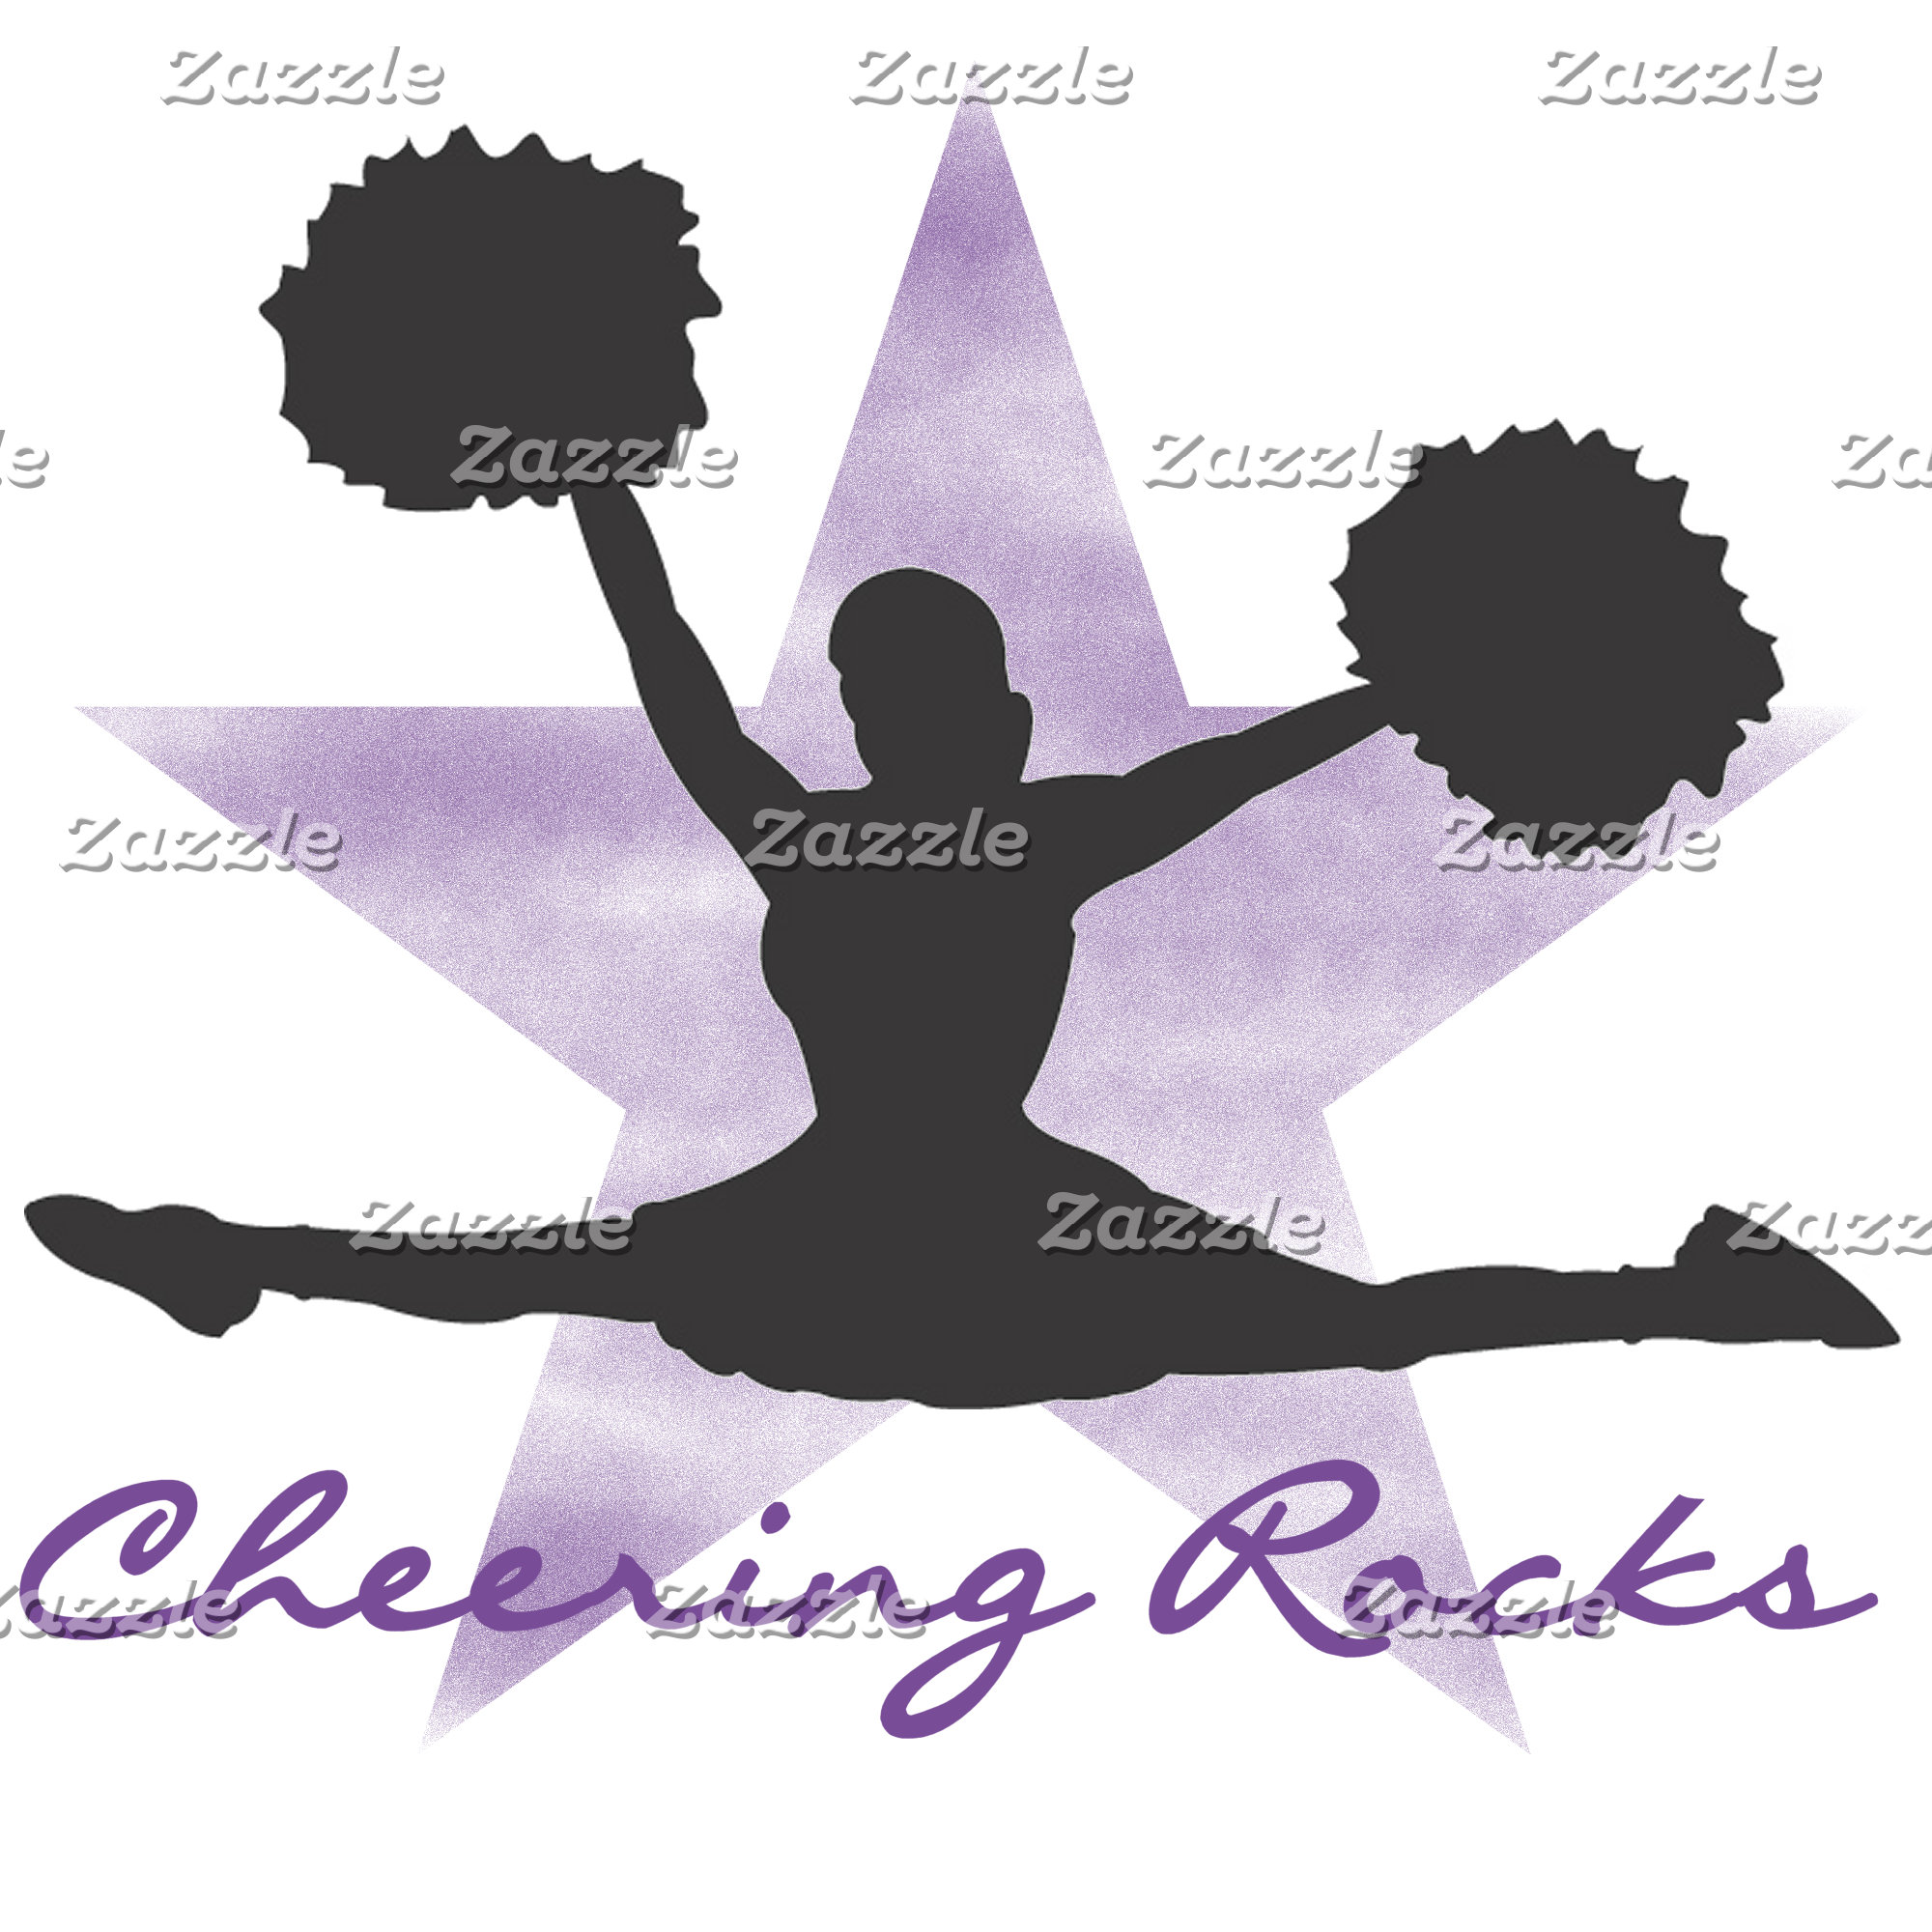 Cheerlead